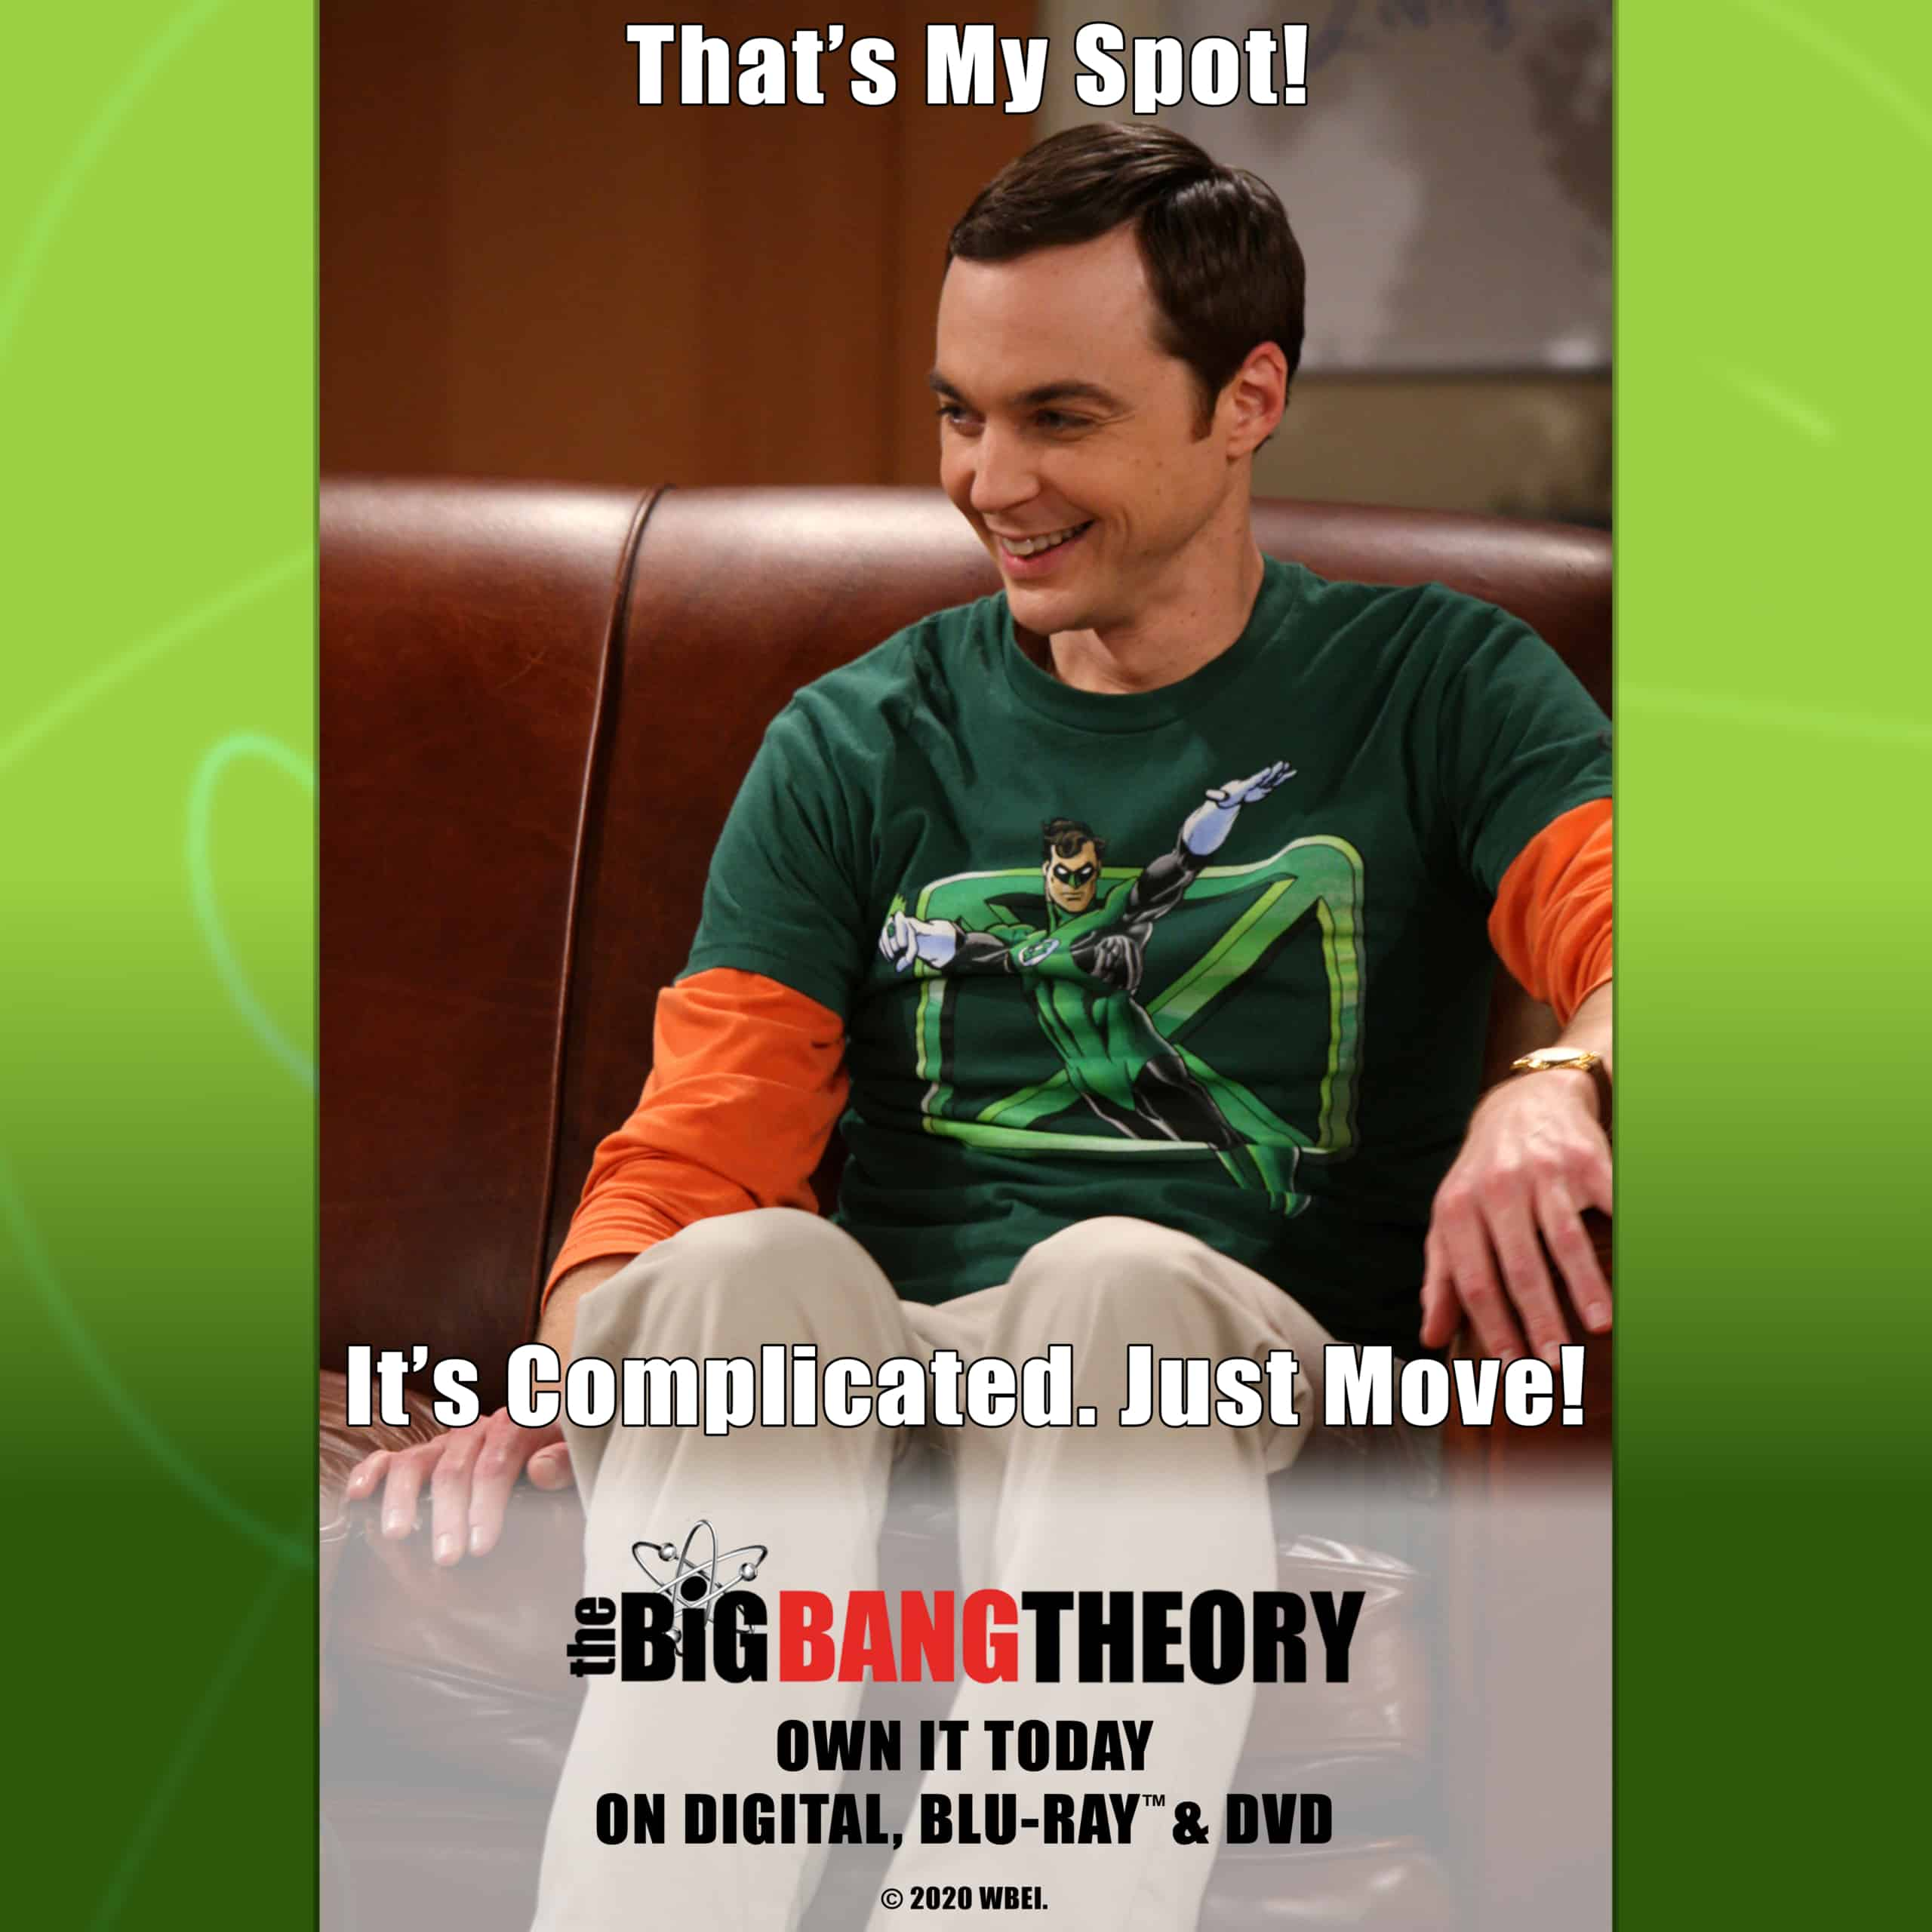 That's My Spot Sheldon Cooper Big Bang Theory Meme AndersonVision exclusive